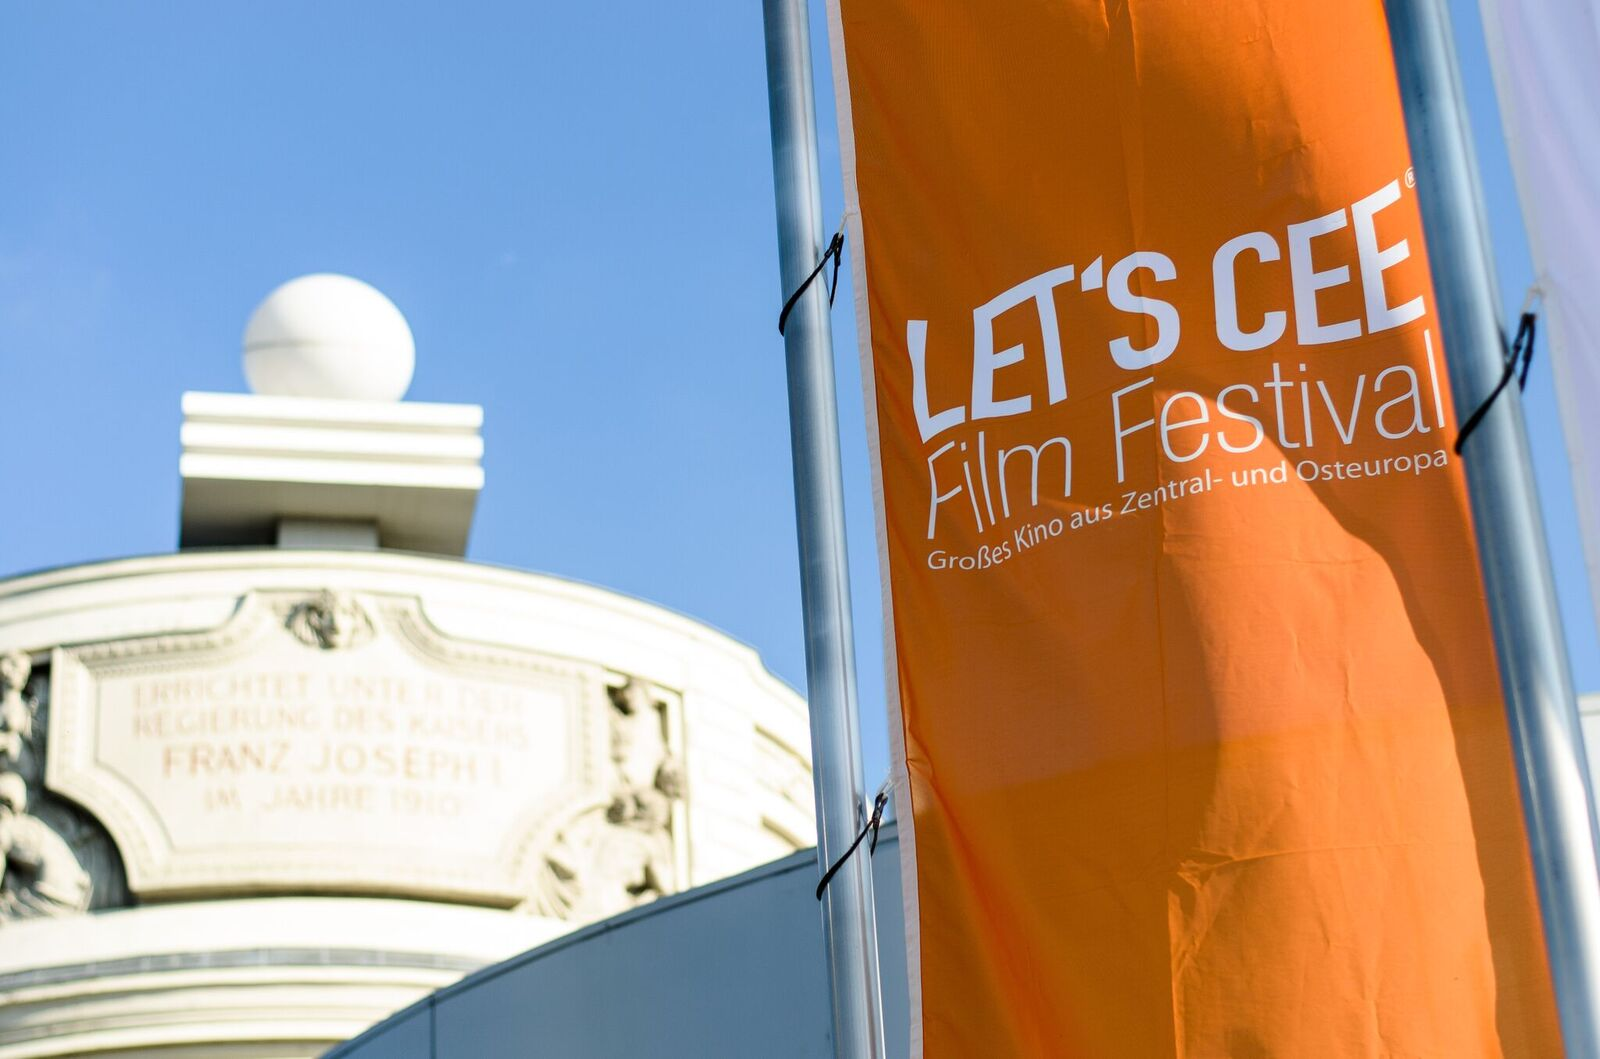 Let's CEE Filmfestival